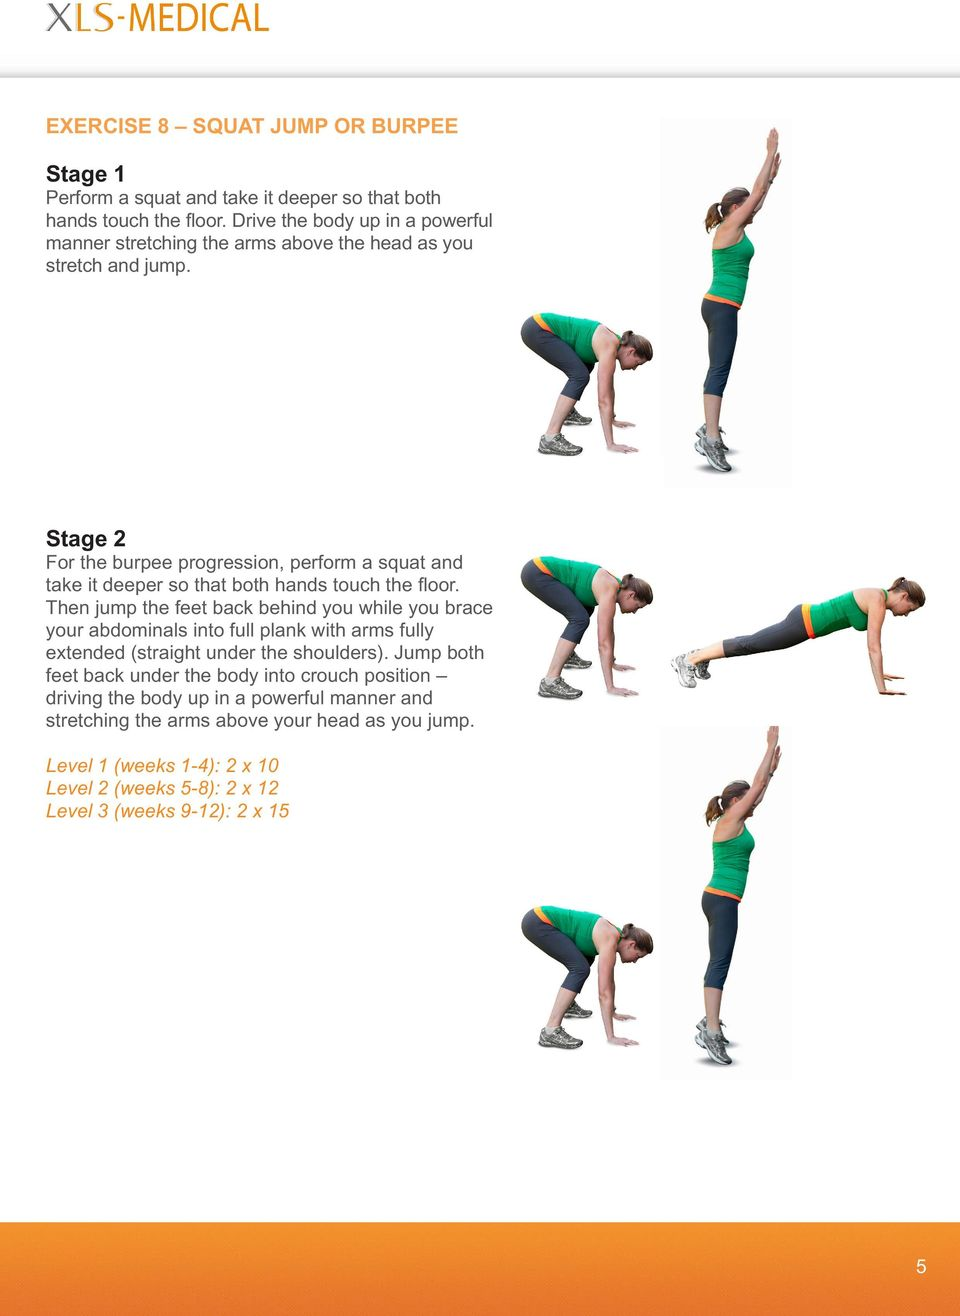 Stage 2 For the burpee progression, perform a squat and take it deeper so that both hands touch the floor.